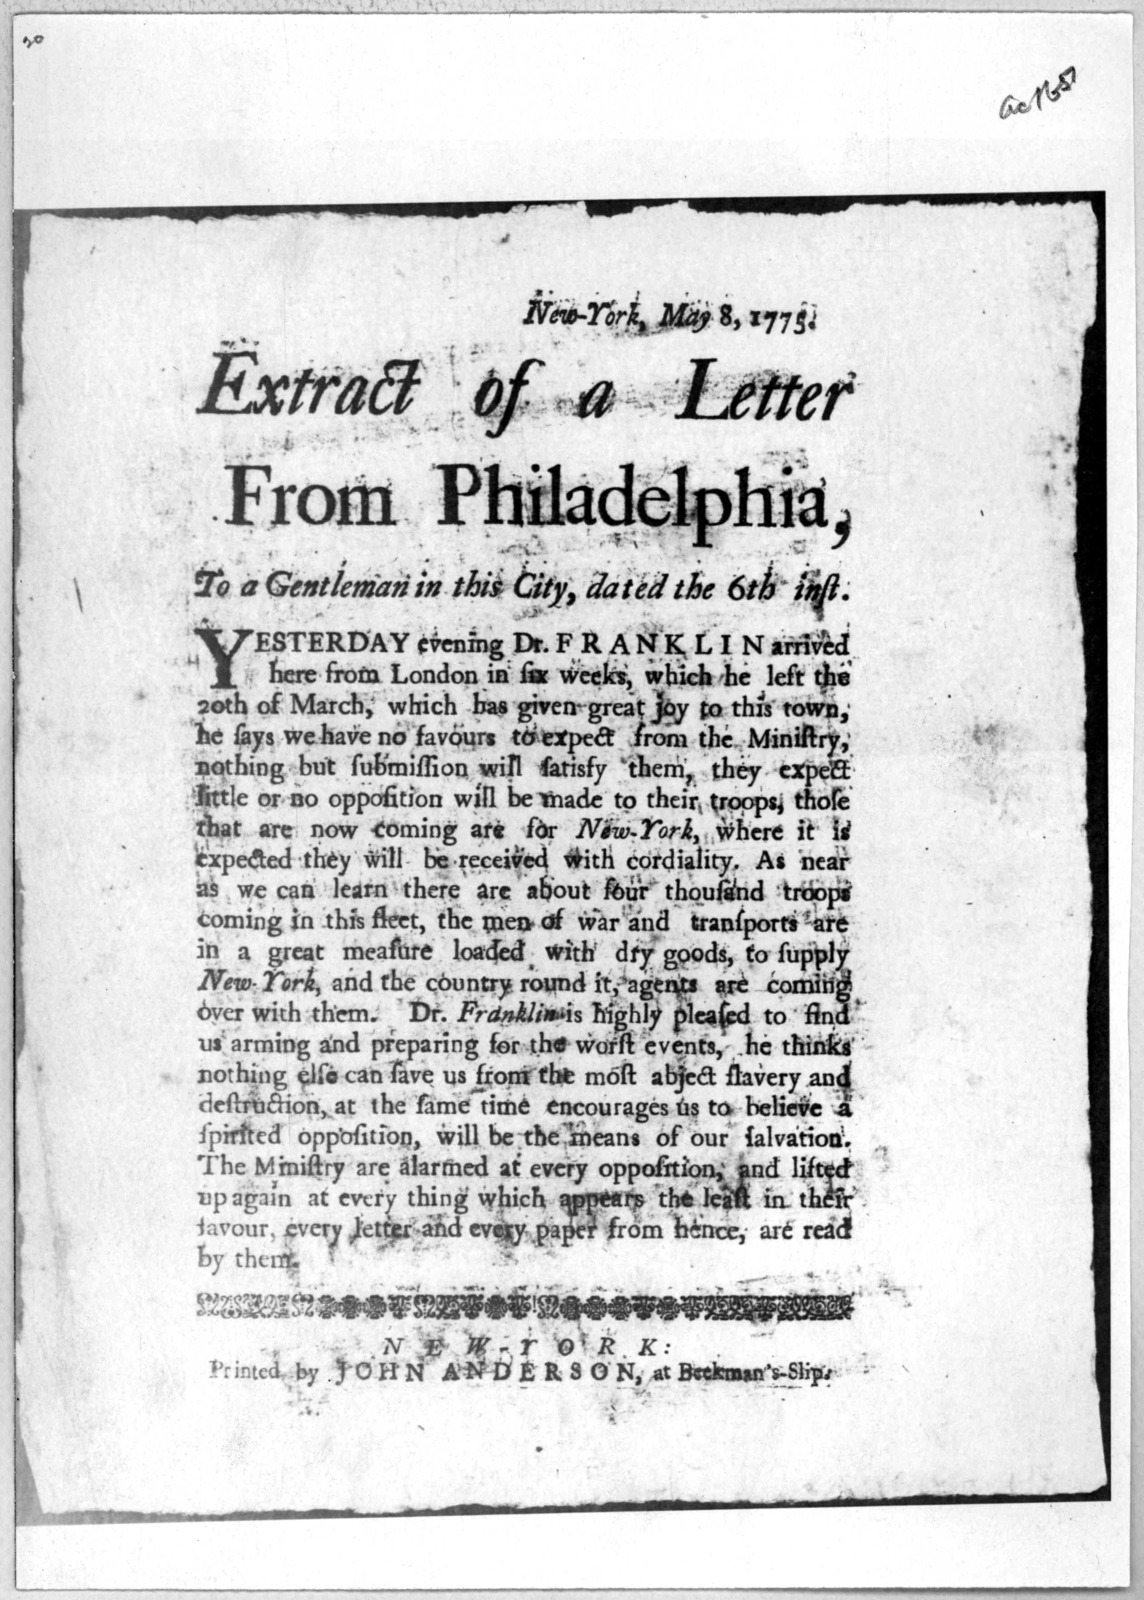 New York, May 8, 1775. Extract of a letter from Philadelphia, to a gentleman in this City, dated the 6th instant. Yesterday evening Dr. Franklin arrived here from Londin in six weeks, which he left the 20th of March, which has given great joy to